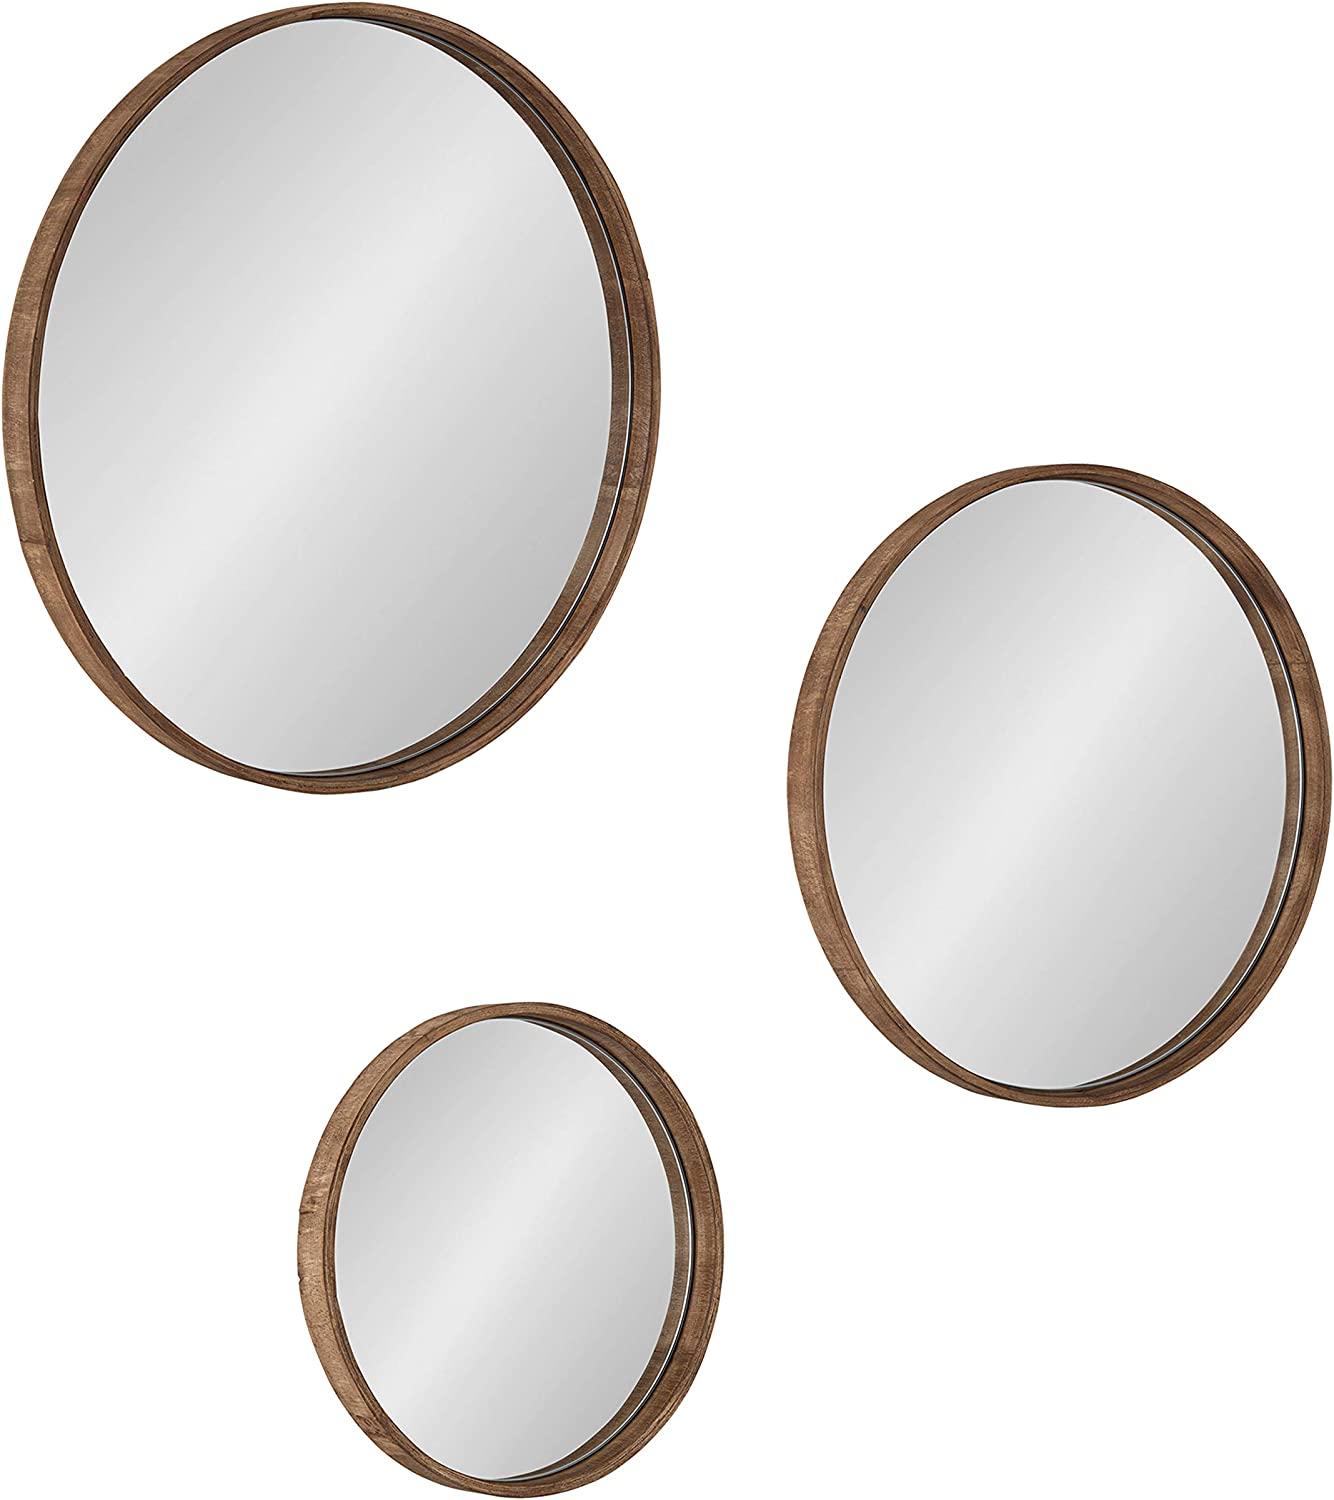 Kate and Laurel Traviston Round Deocrative Wood Wall Mirrors, 3-Piece Set, Natural Brown